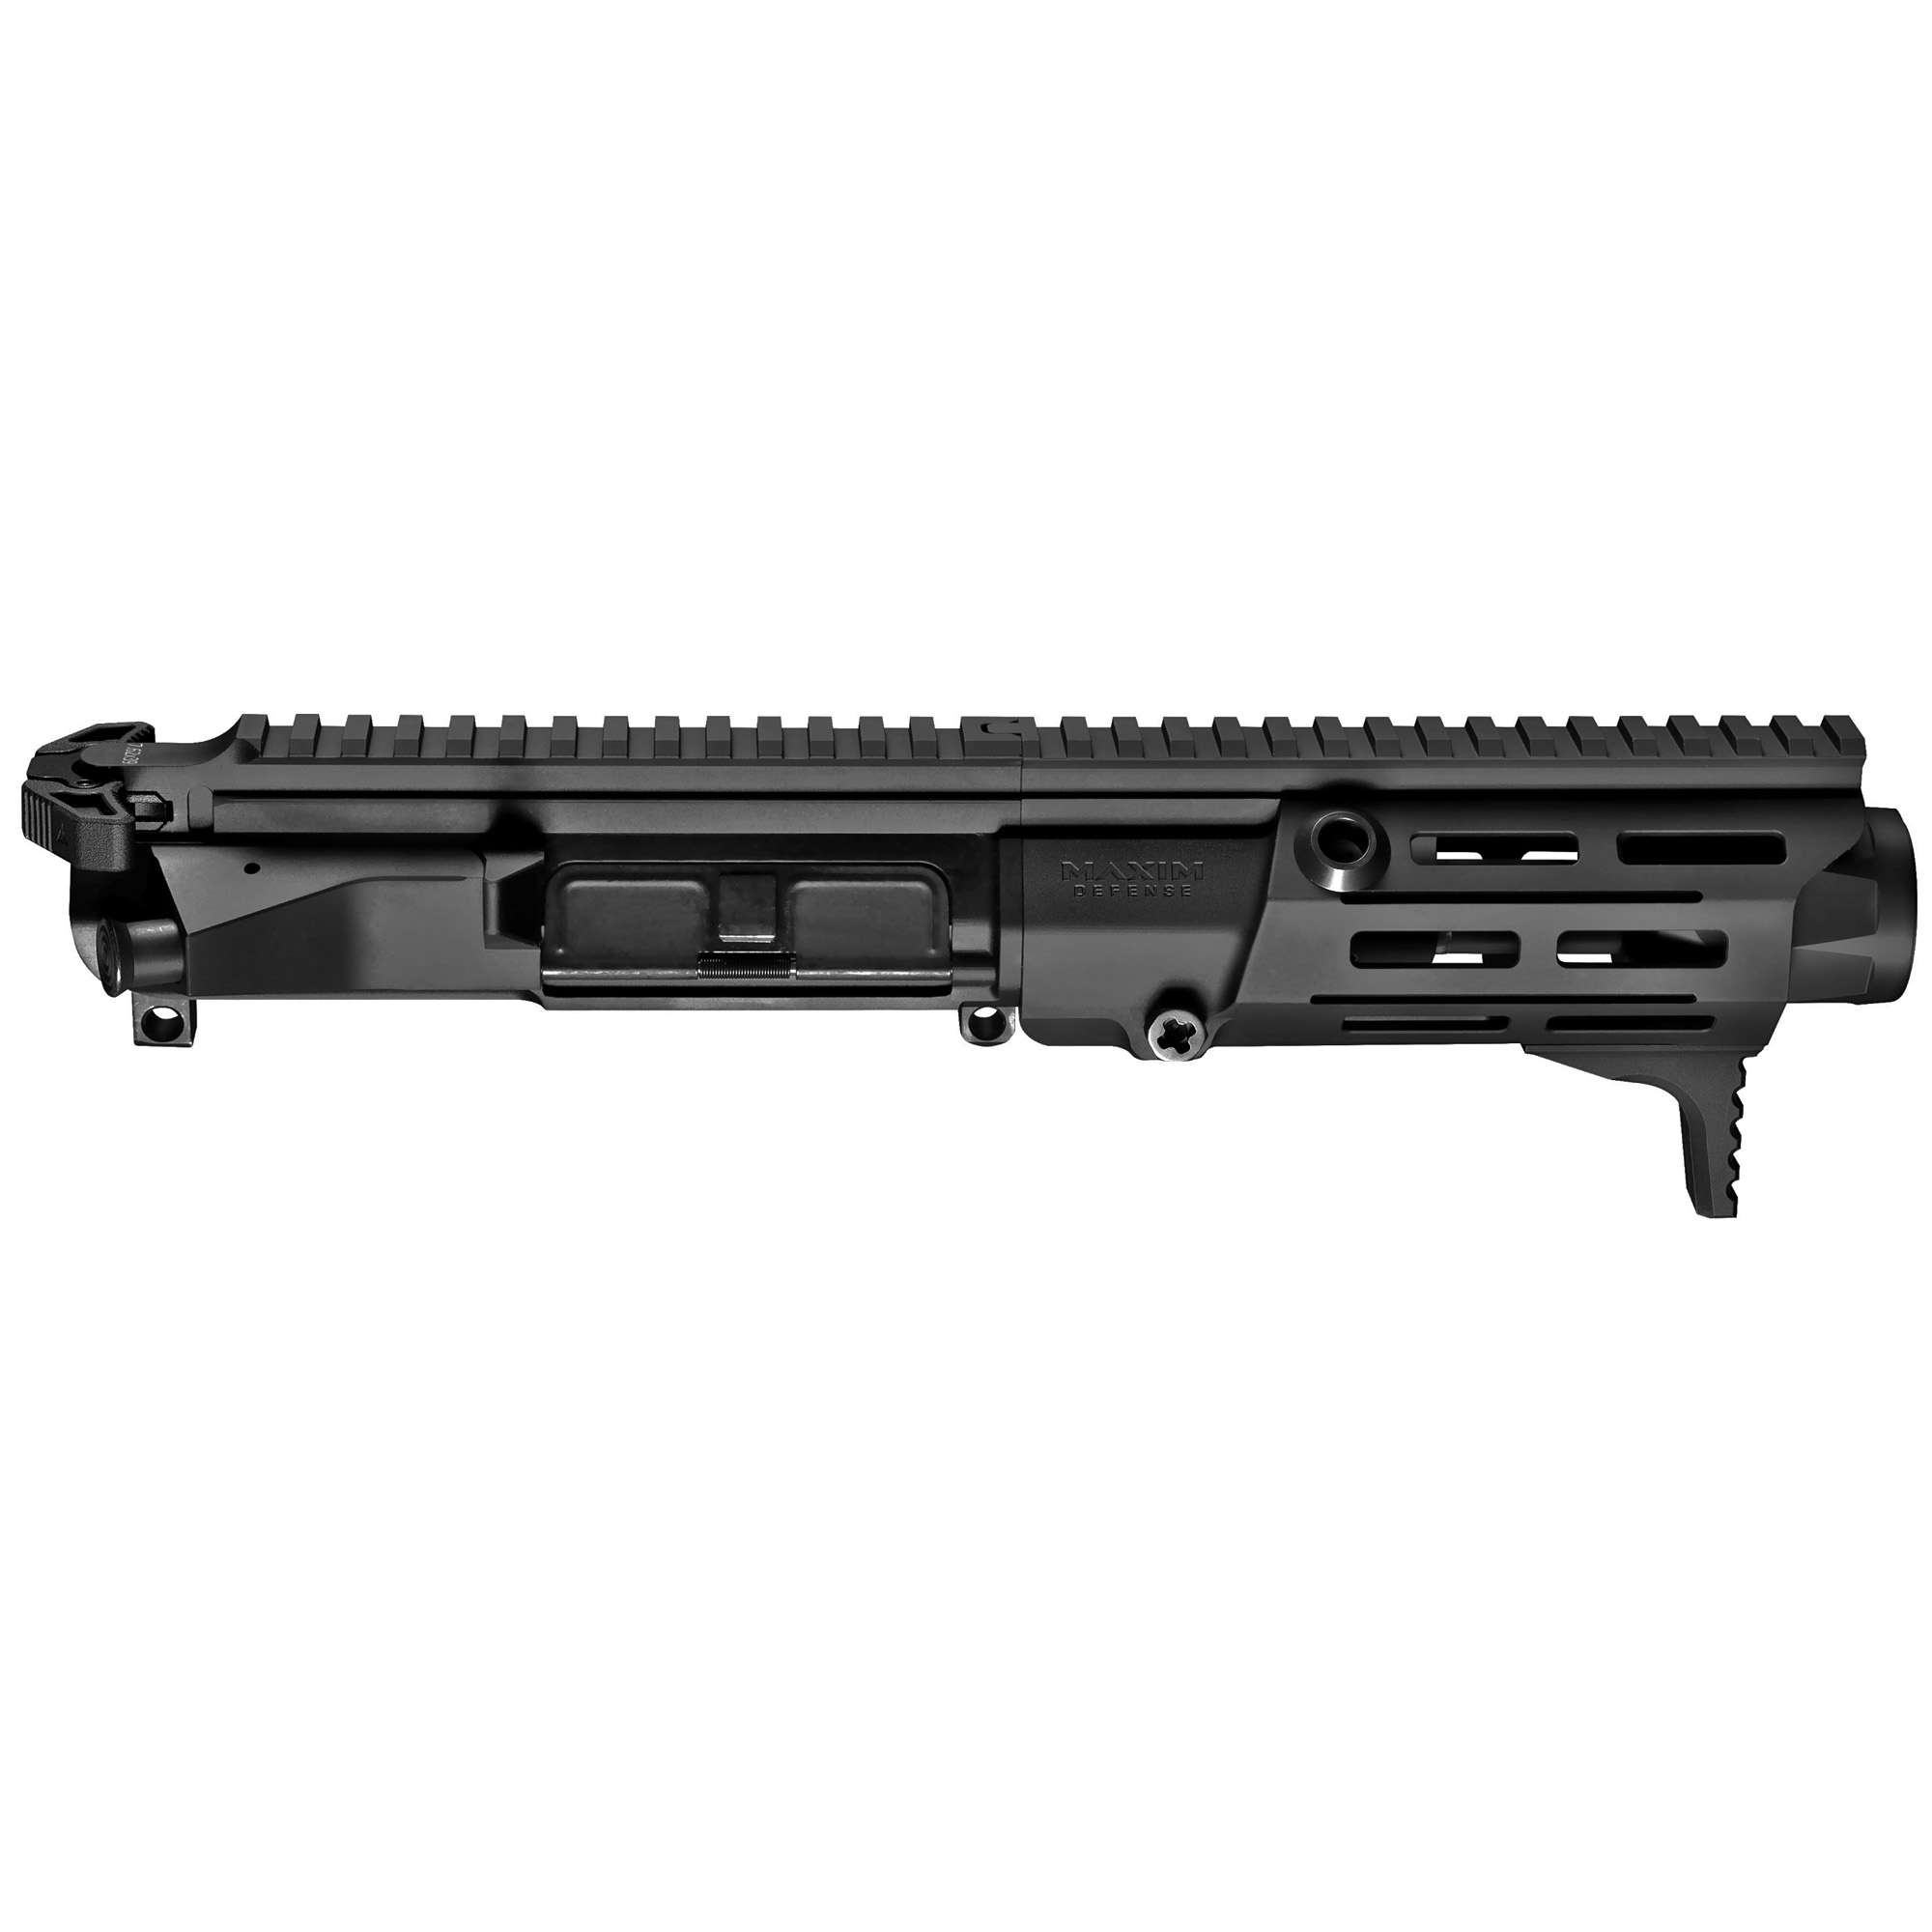 """The NEW Maxim Defense PDX(TM) U.R.G is built to handle the fierce demands of the Tier 1 community and designed to install on any Mil-Spec lower receiver. With the PDX(TM) U.R.G"""" you dominate close quarter encounters and achieve maximum energy on target without sacrificing accuracy at distance. At just 14"""" in overall length and a 5.5"""" barrel"""" the PDX(TM) U.R.G. is the ultimate choice for when concealment and personal defense is non-negotiable. The PDX(TM) U.R.G. is also equipped with newly invented Maxim HATEBRAKE(TM) Muzzle Booster. This patent-pending device significantly reduces recoil"""" decreases the flash signature"""" pushes gasses and concussion waves downrange away from the operator improving overall execution in short barrel pistols and rifles. The PDX U.R.G. uses a Direct Impingement system."""